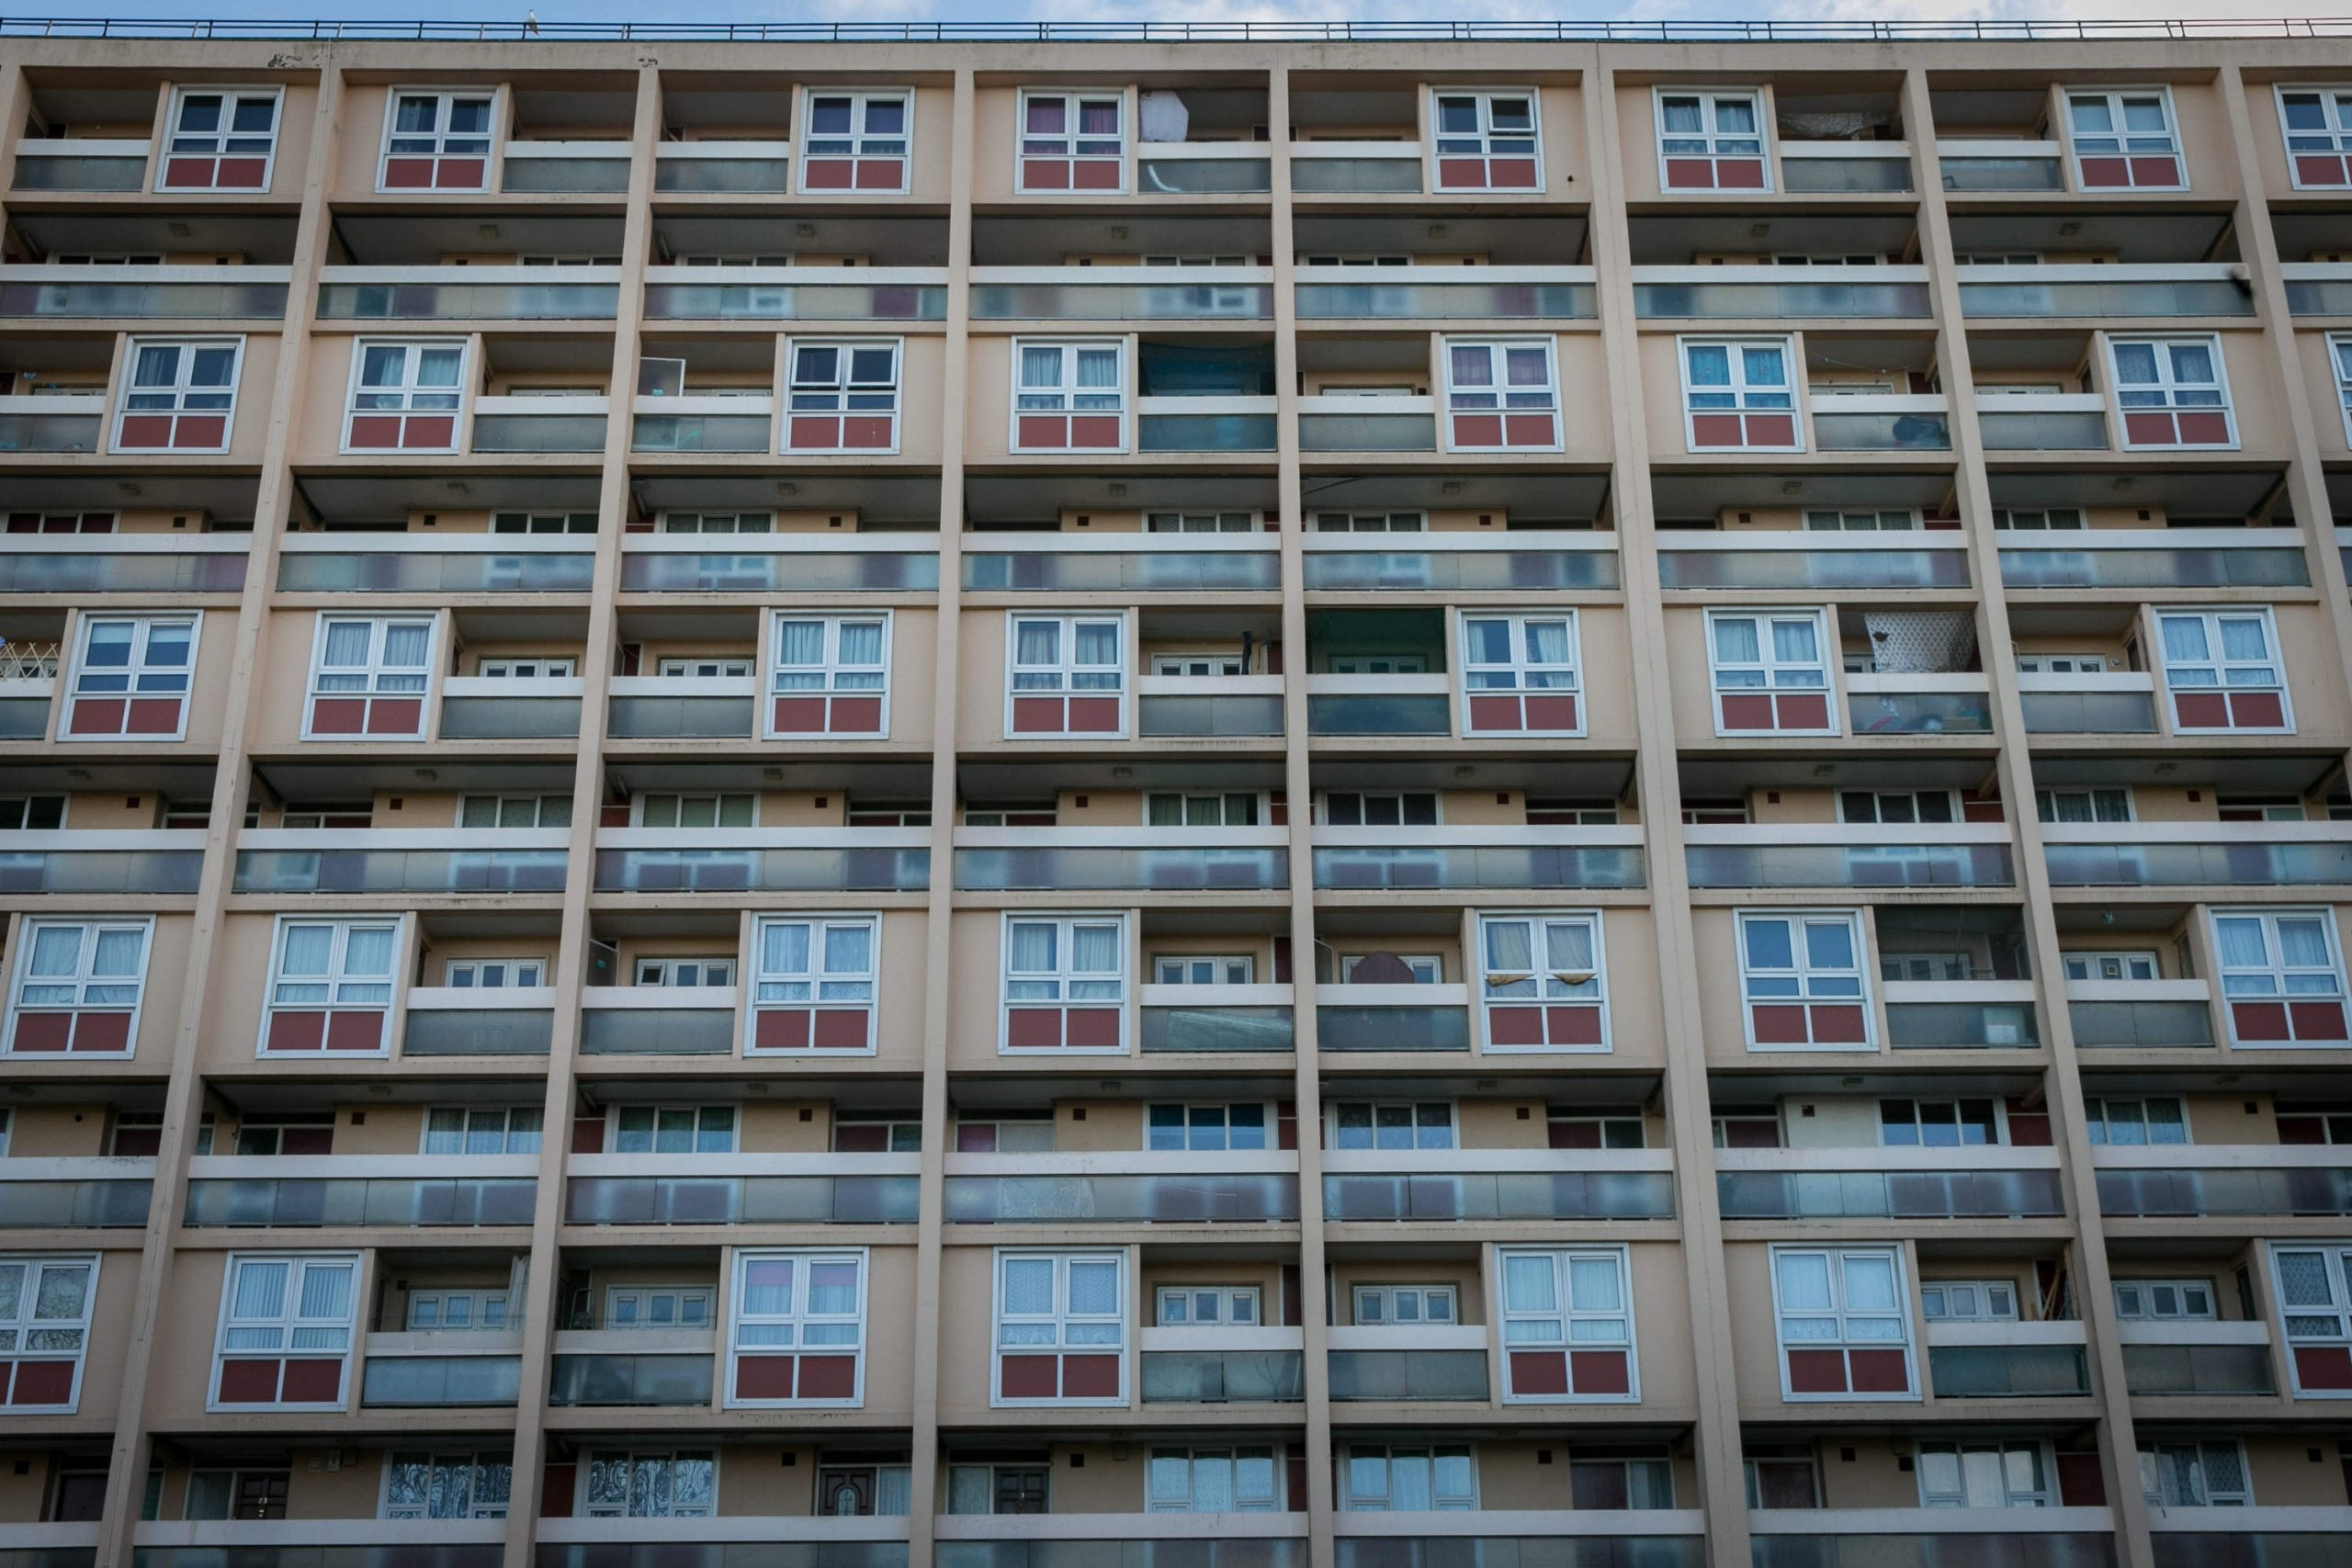 The government's housing policies are dividing London